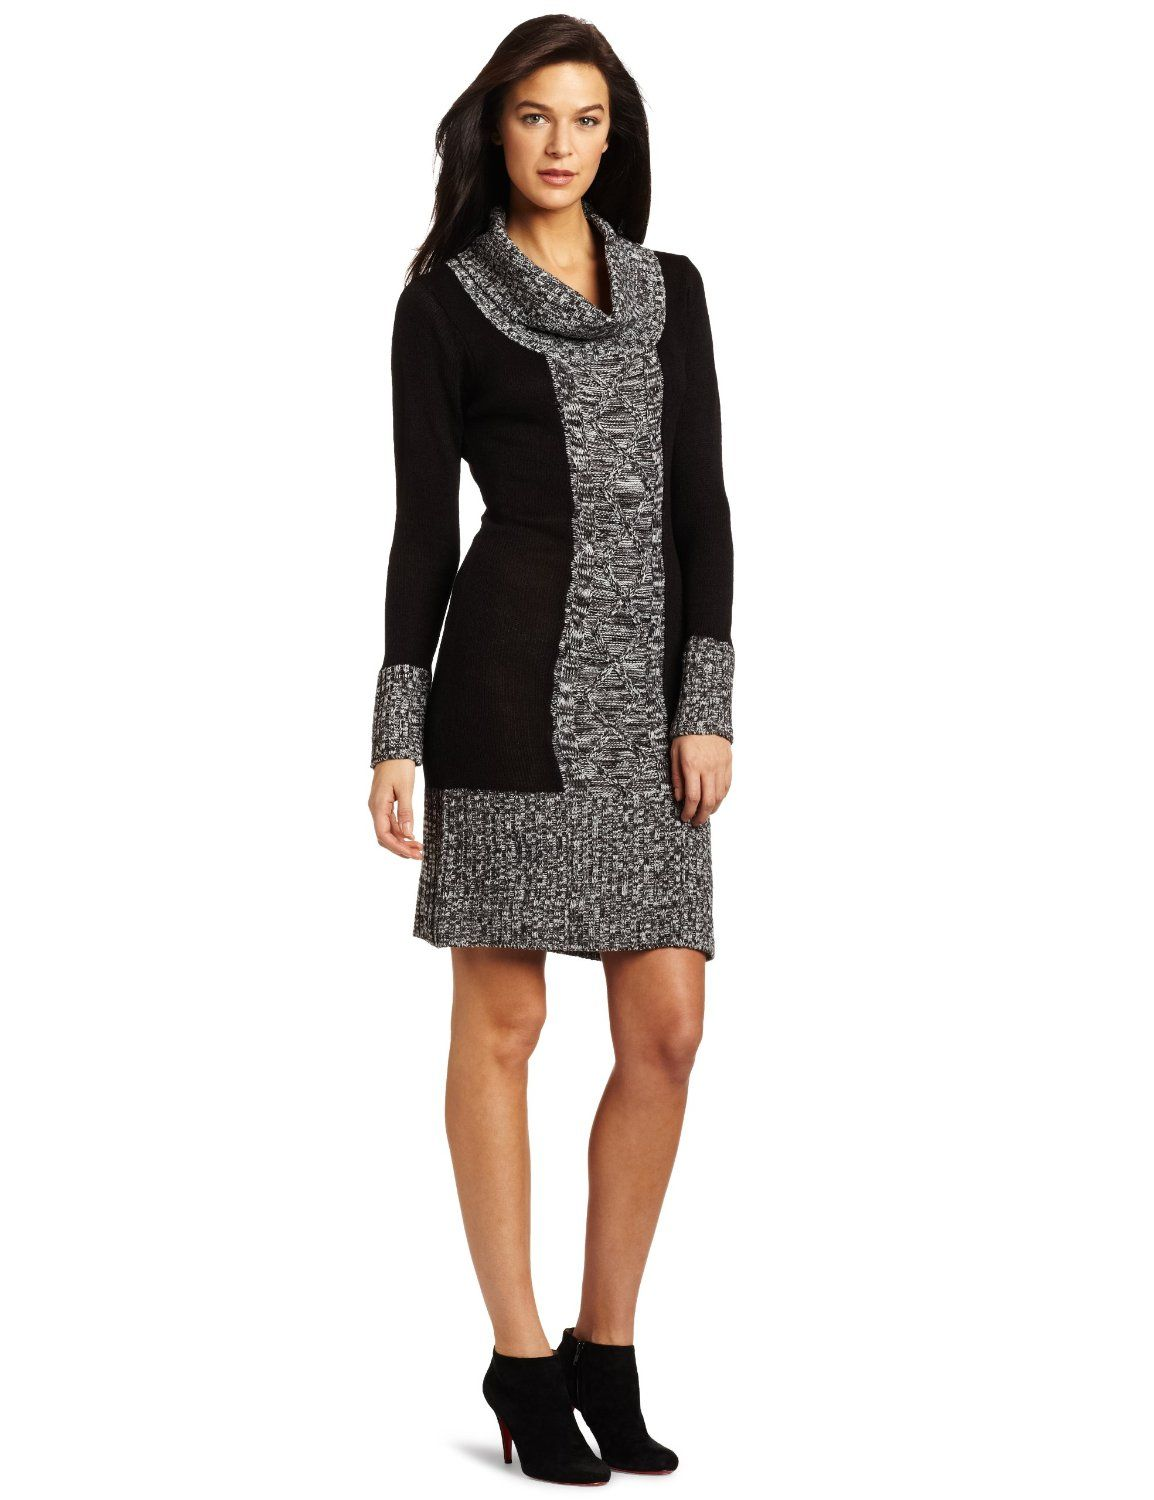 Tiana B Women's Color Blocked Sweater Dress Price: $39.99 FREE ...